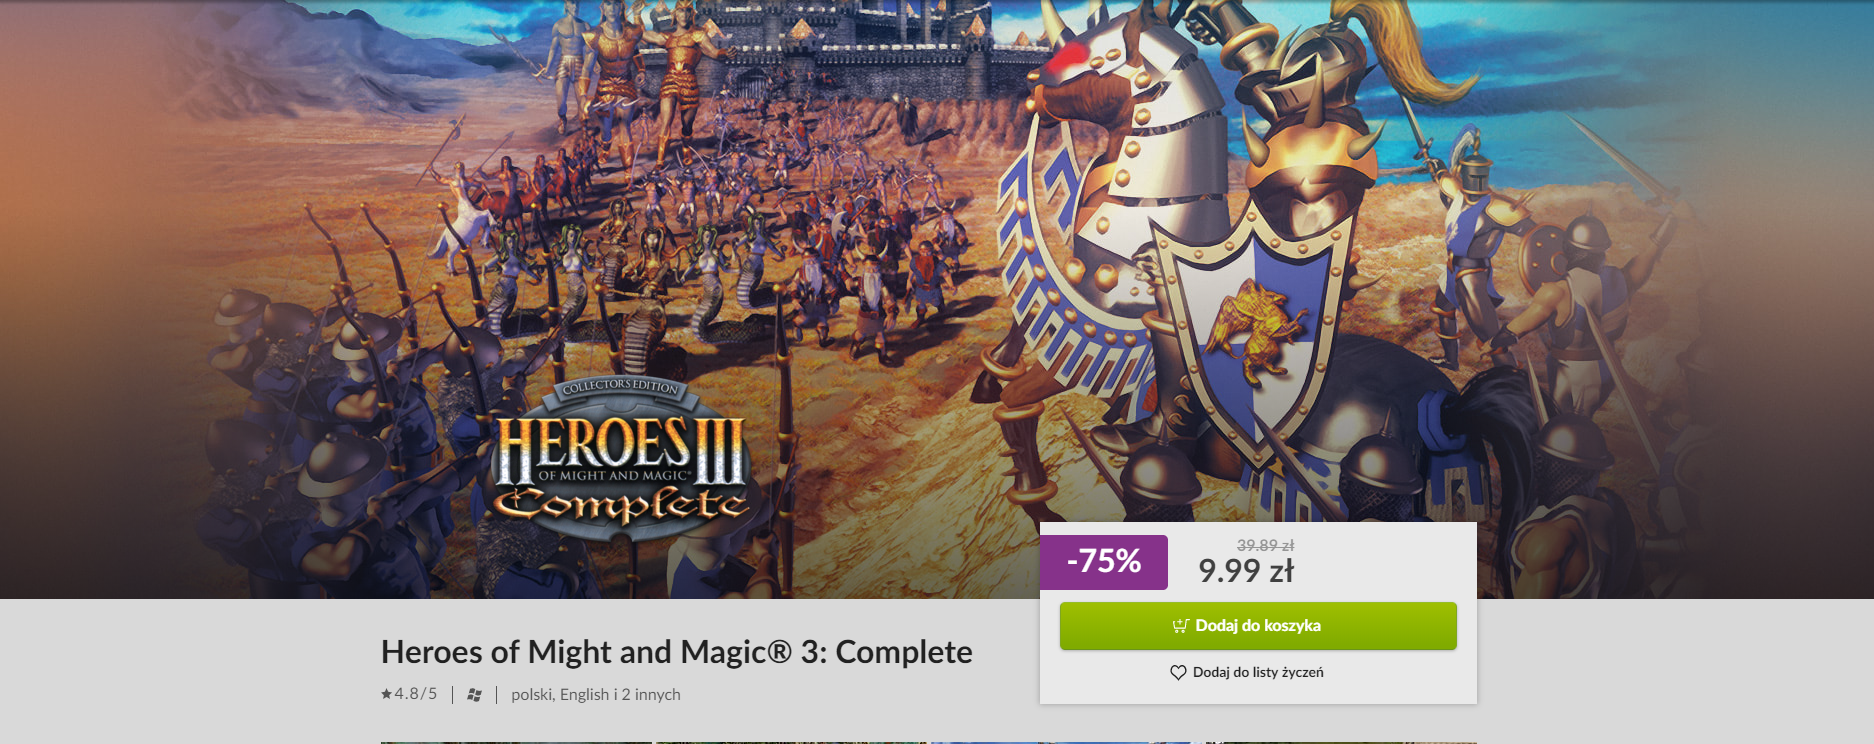 Promocja: Heroes of Might & Magic 3: Complete za niecałą dyszkę 23